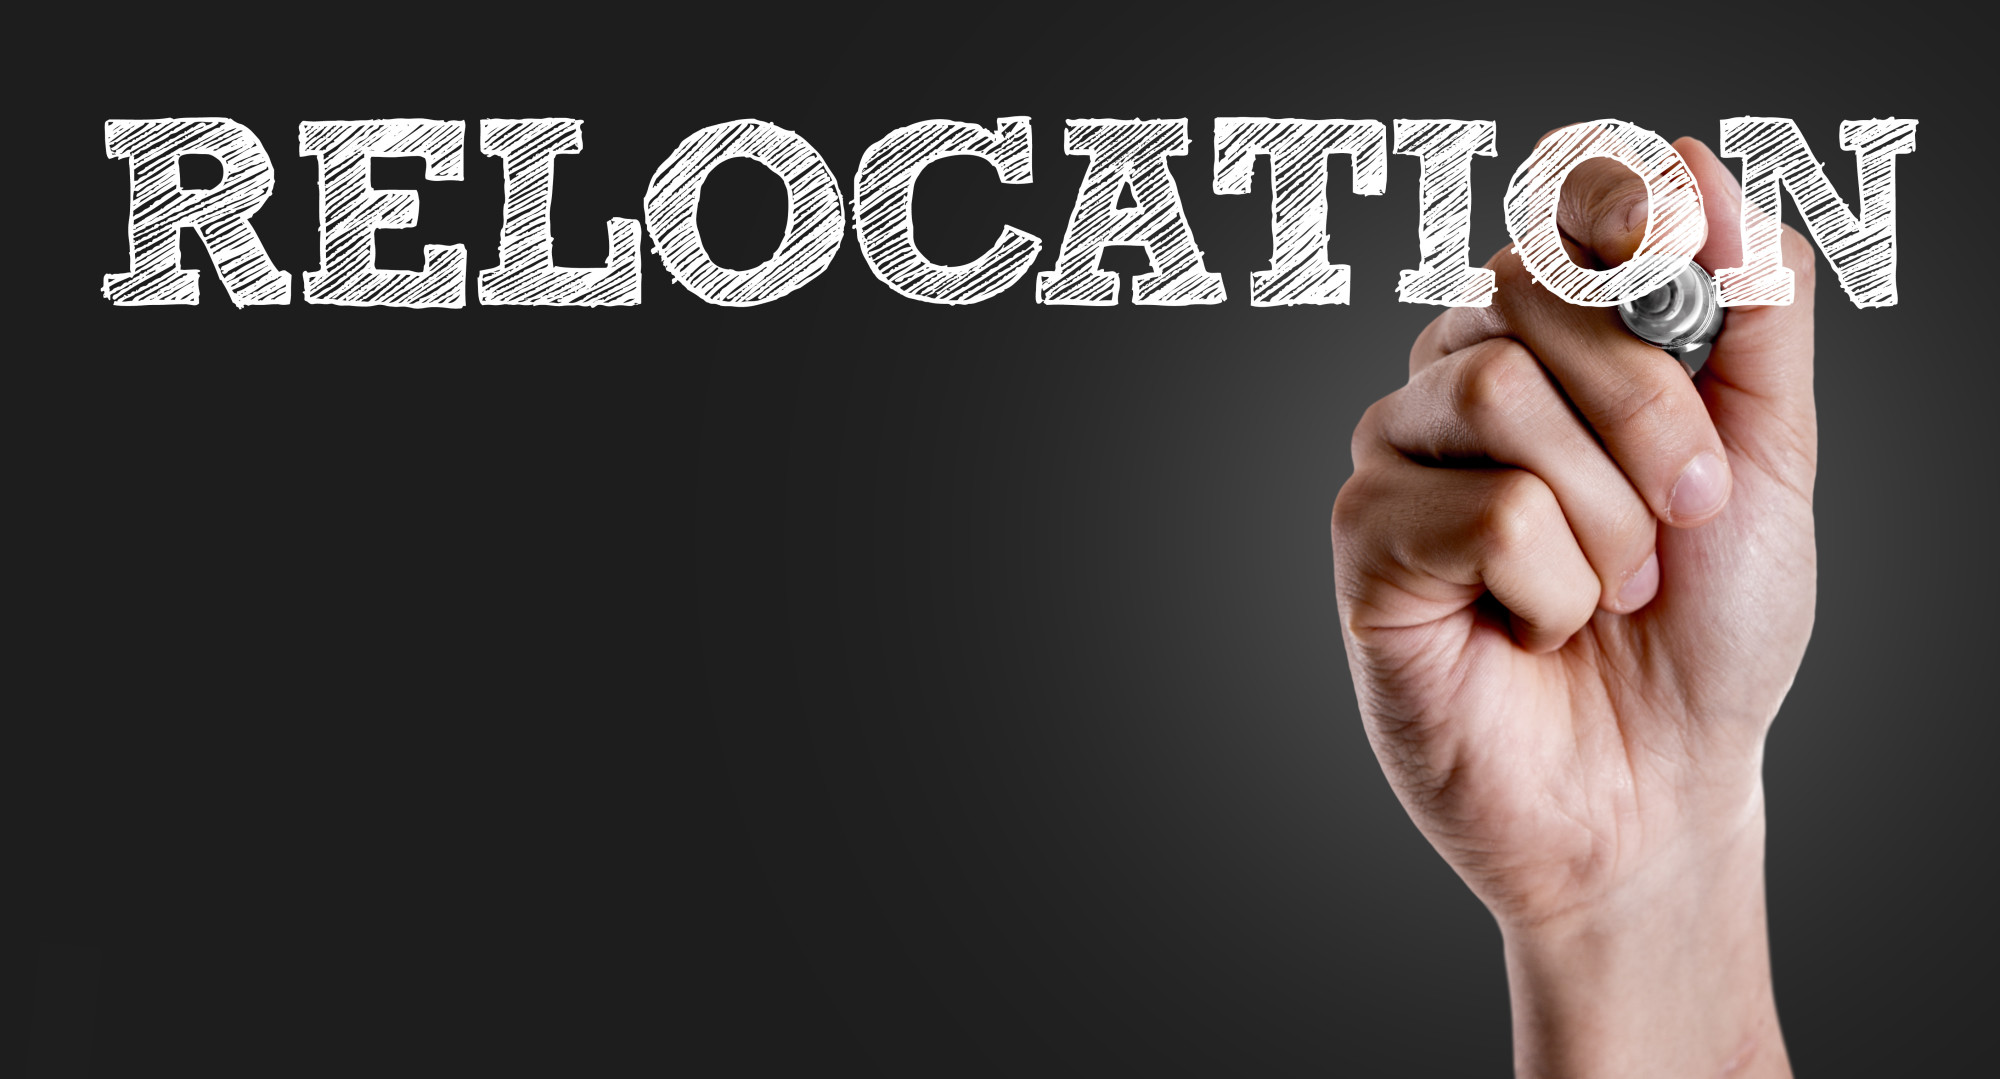 Why You Should Know Your University Employee Relocation Policy